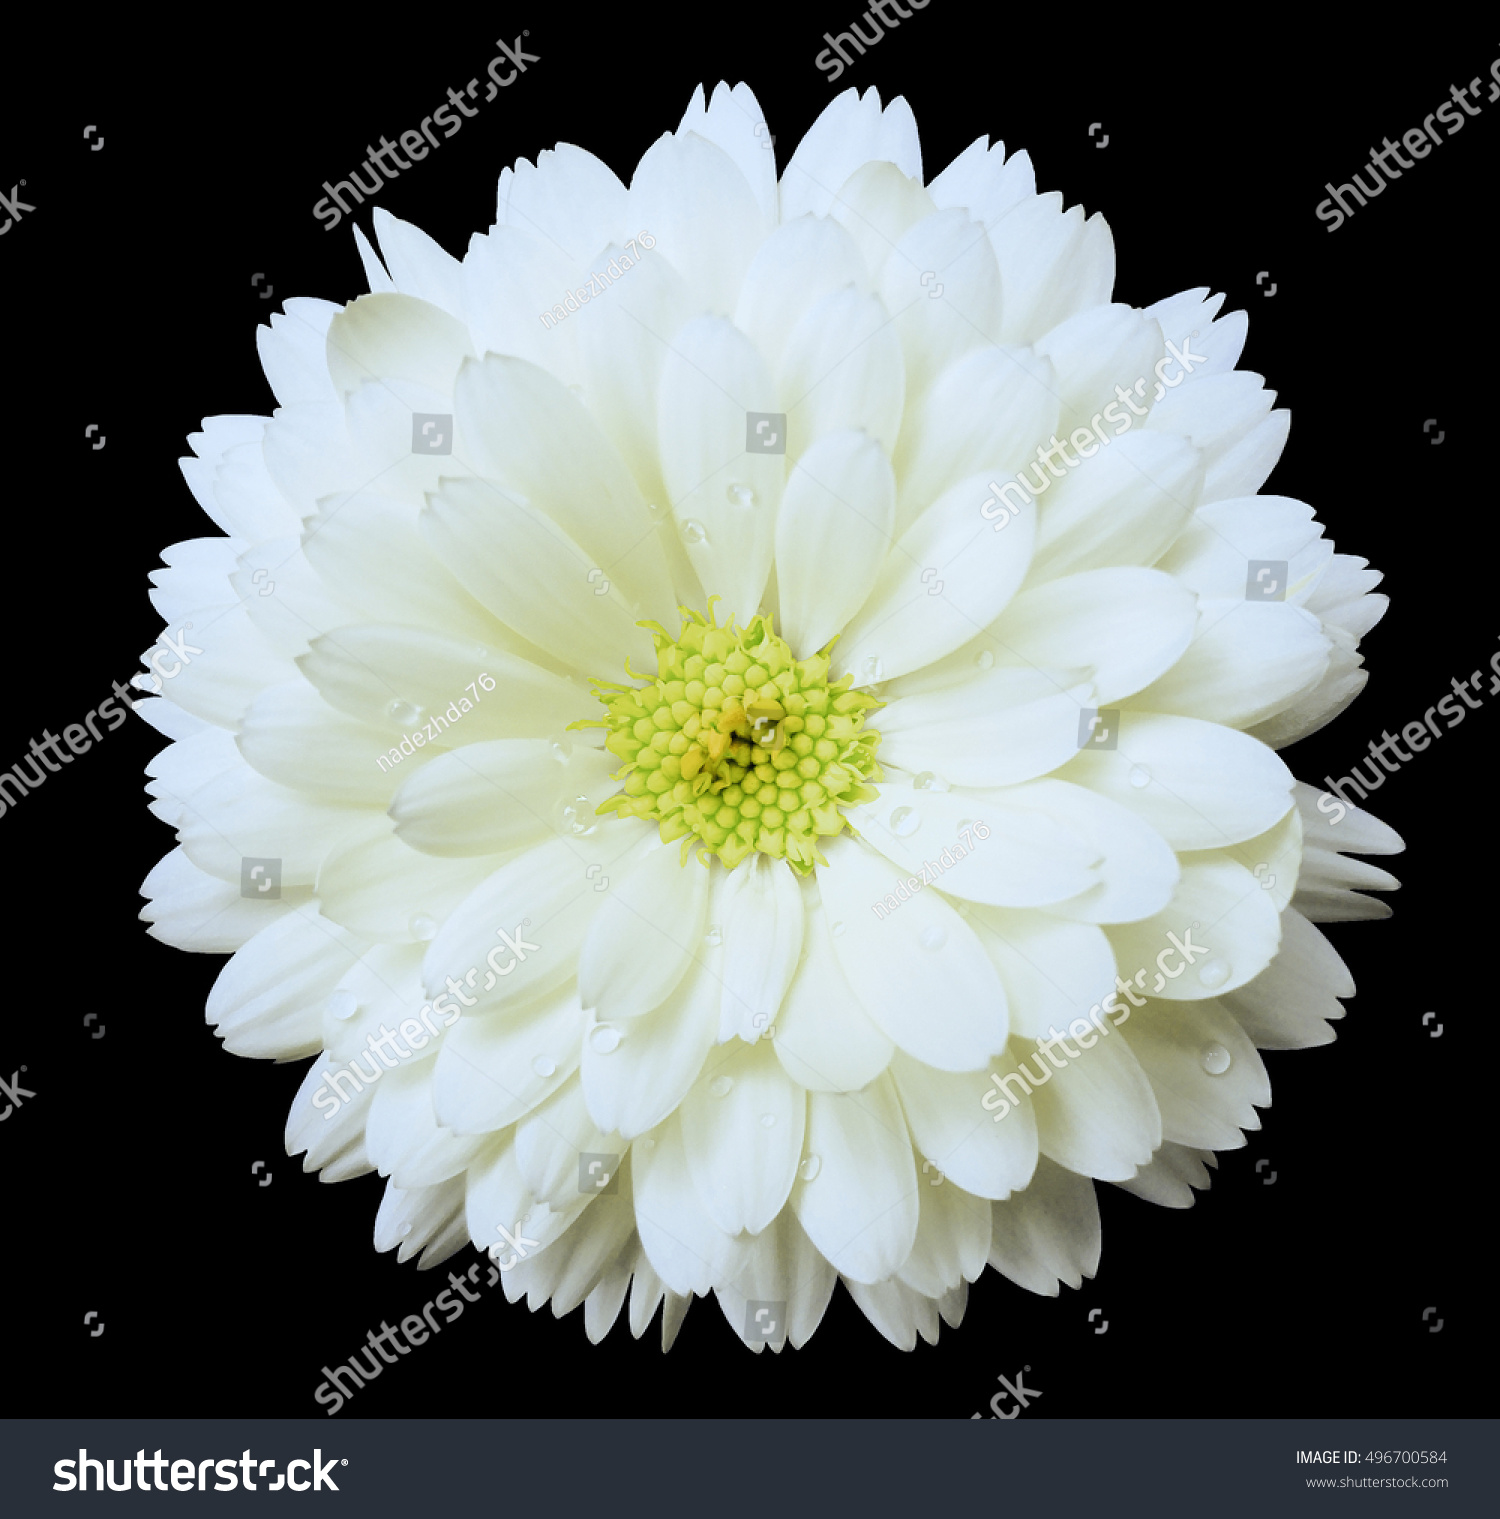 White Flower Calendula The Black Isolated Background With Clipping